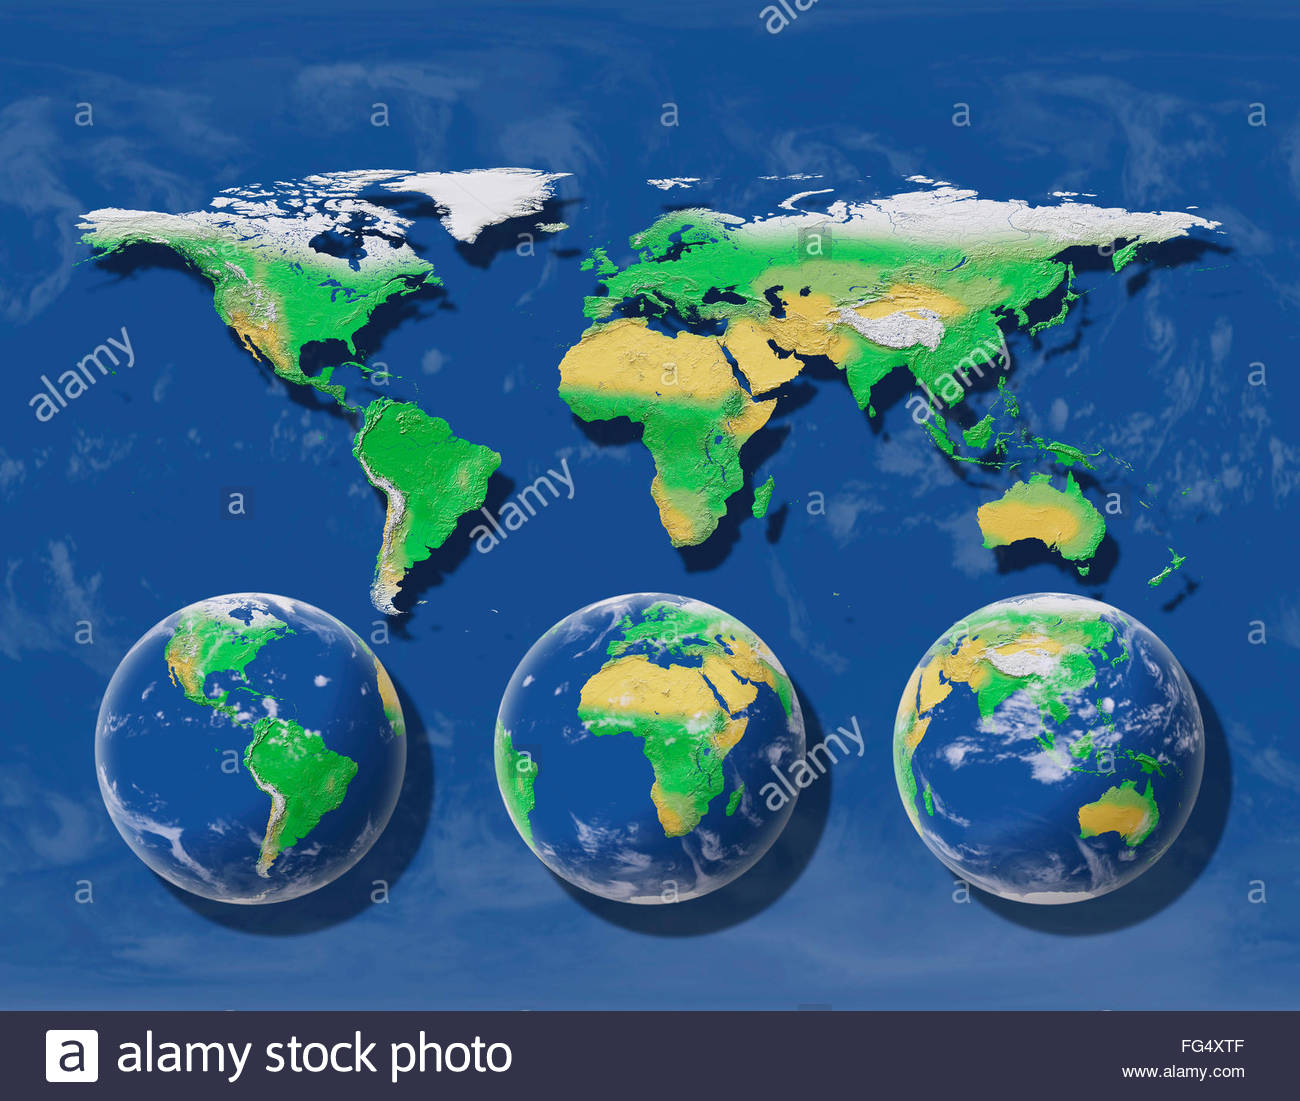 Spherical earth projected on a flat map world maps sphere globe